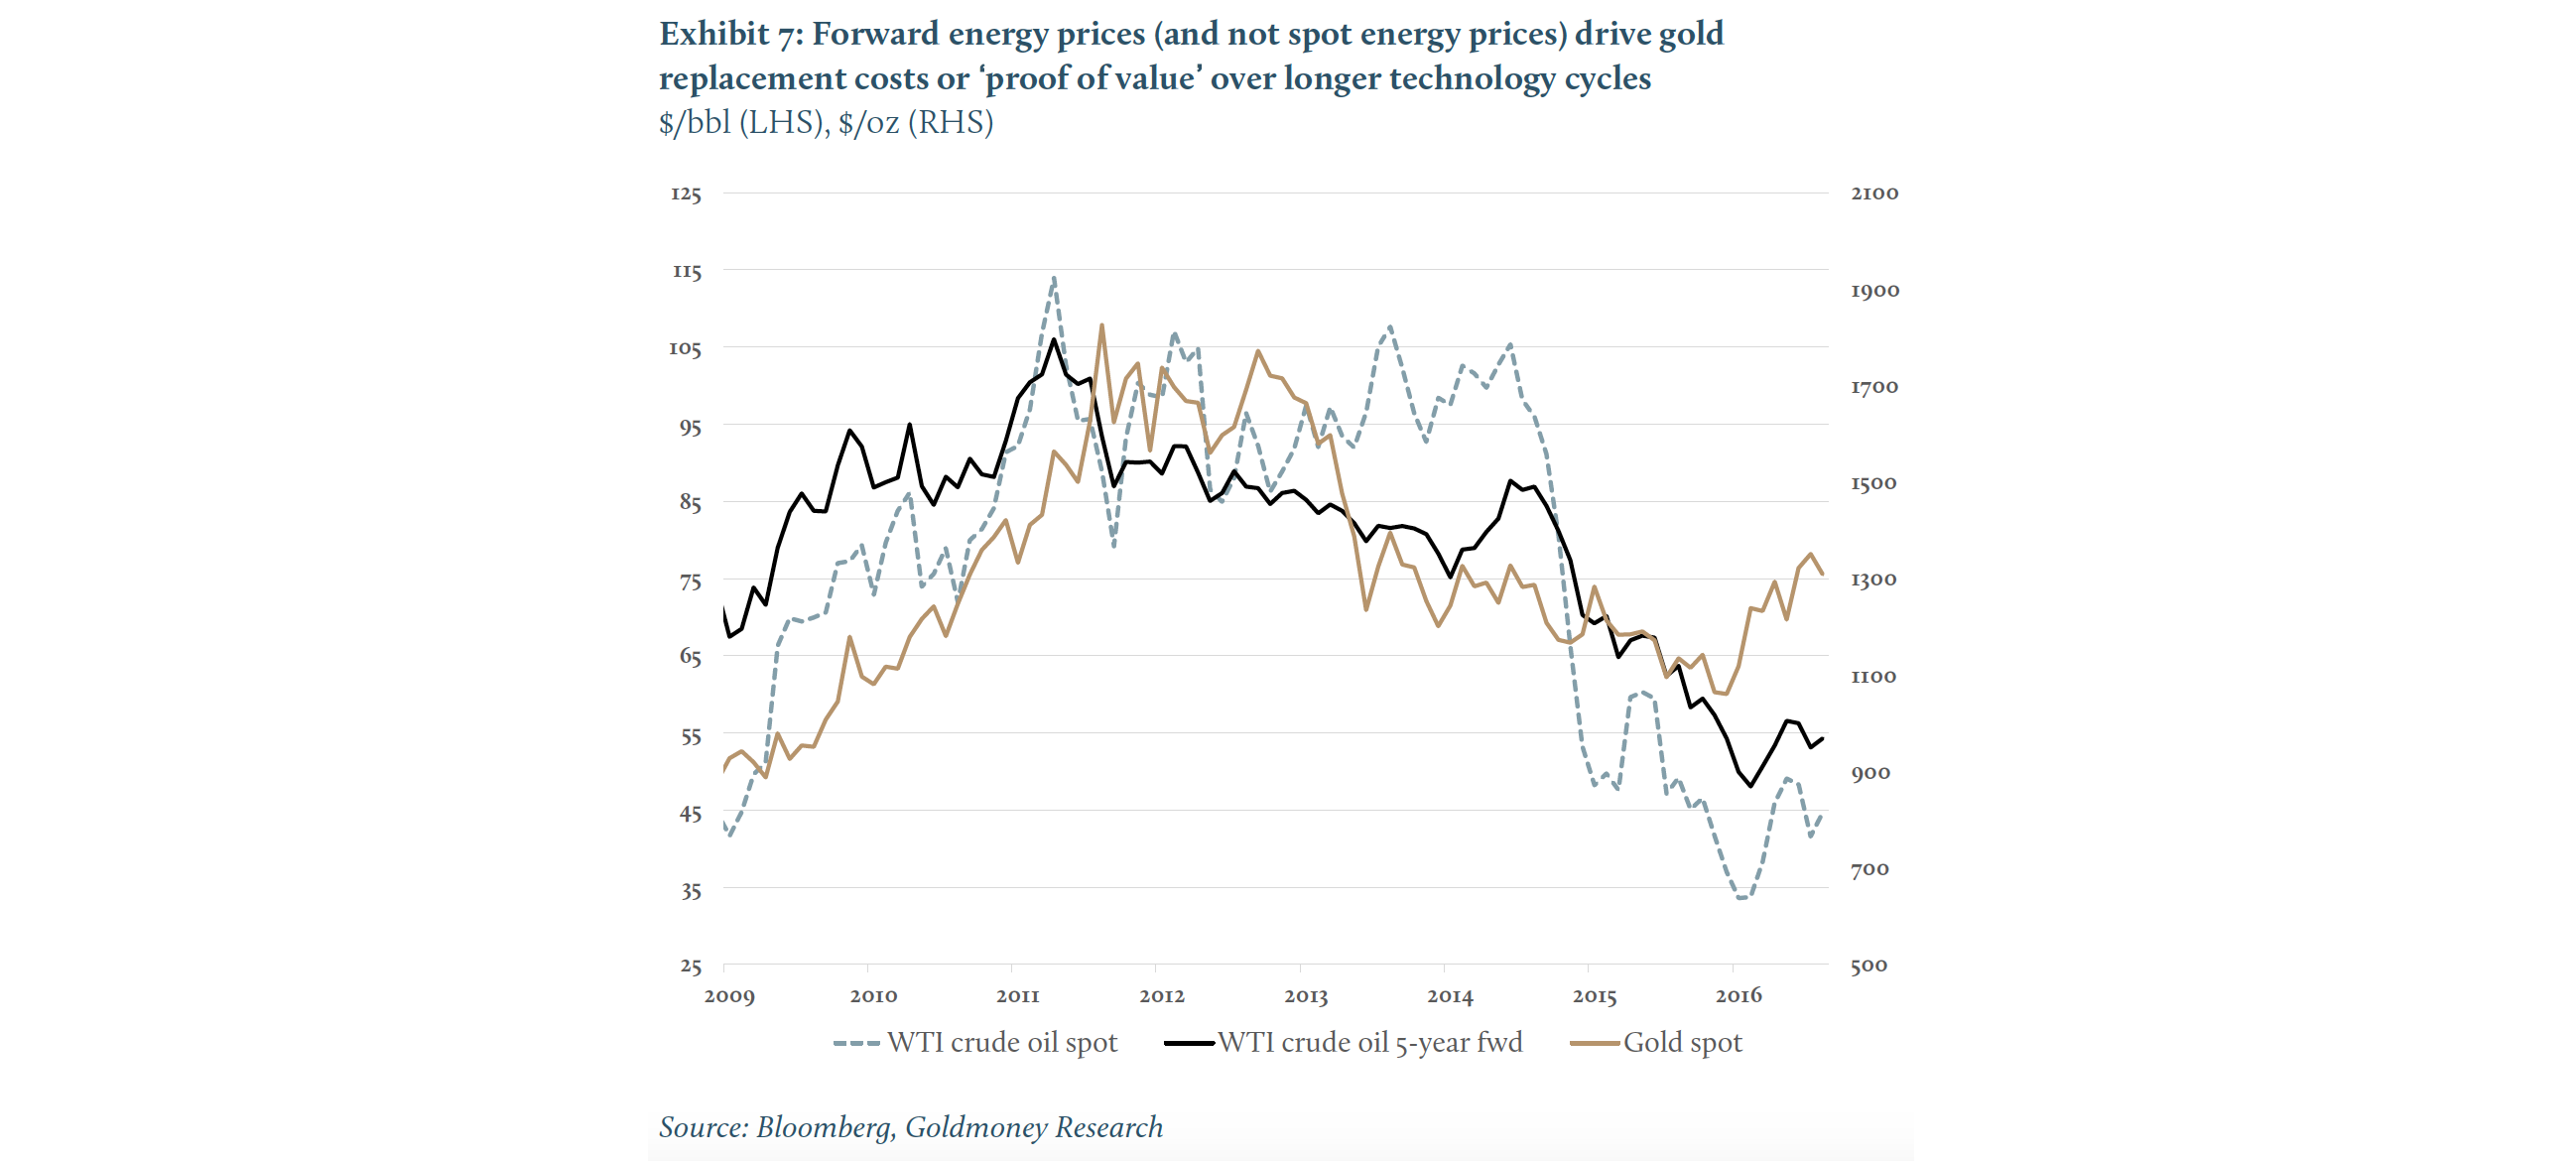 Exhibit 7 Forward energy prices